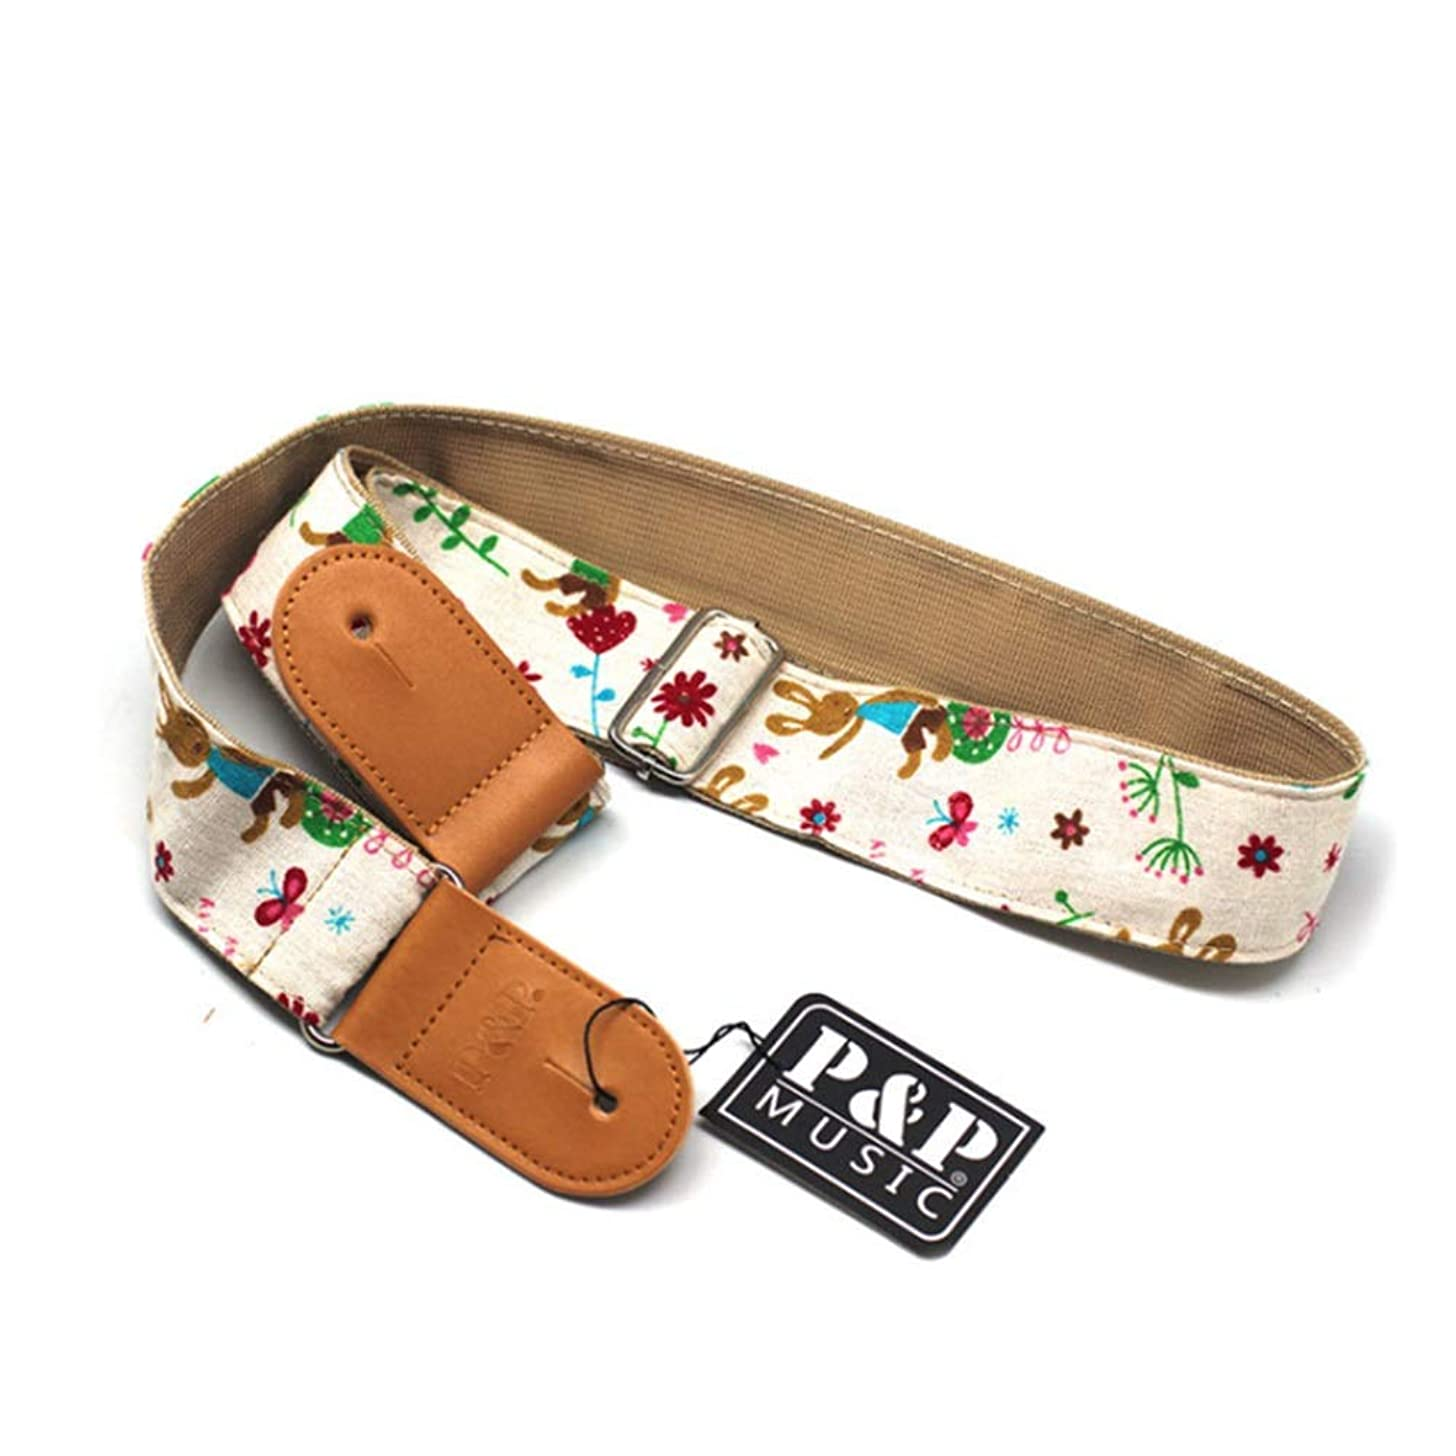 Guitar Strap Adjustable Length 2 Layer Woven Cotton Soft Guitar Strap with Leather Ends for Men Women Kids Electric Acoustic and Bass Guitars 50X137CM Electric Guitar Shoulder Strap